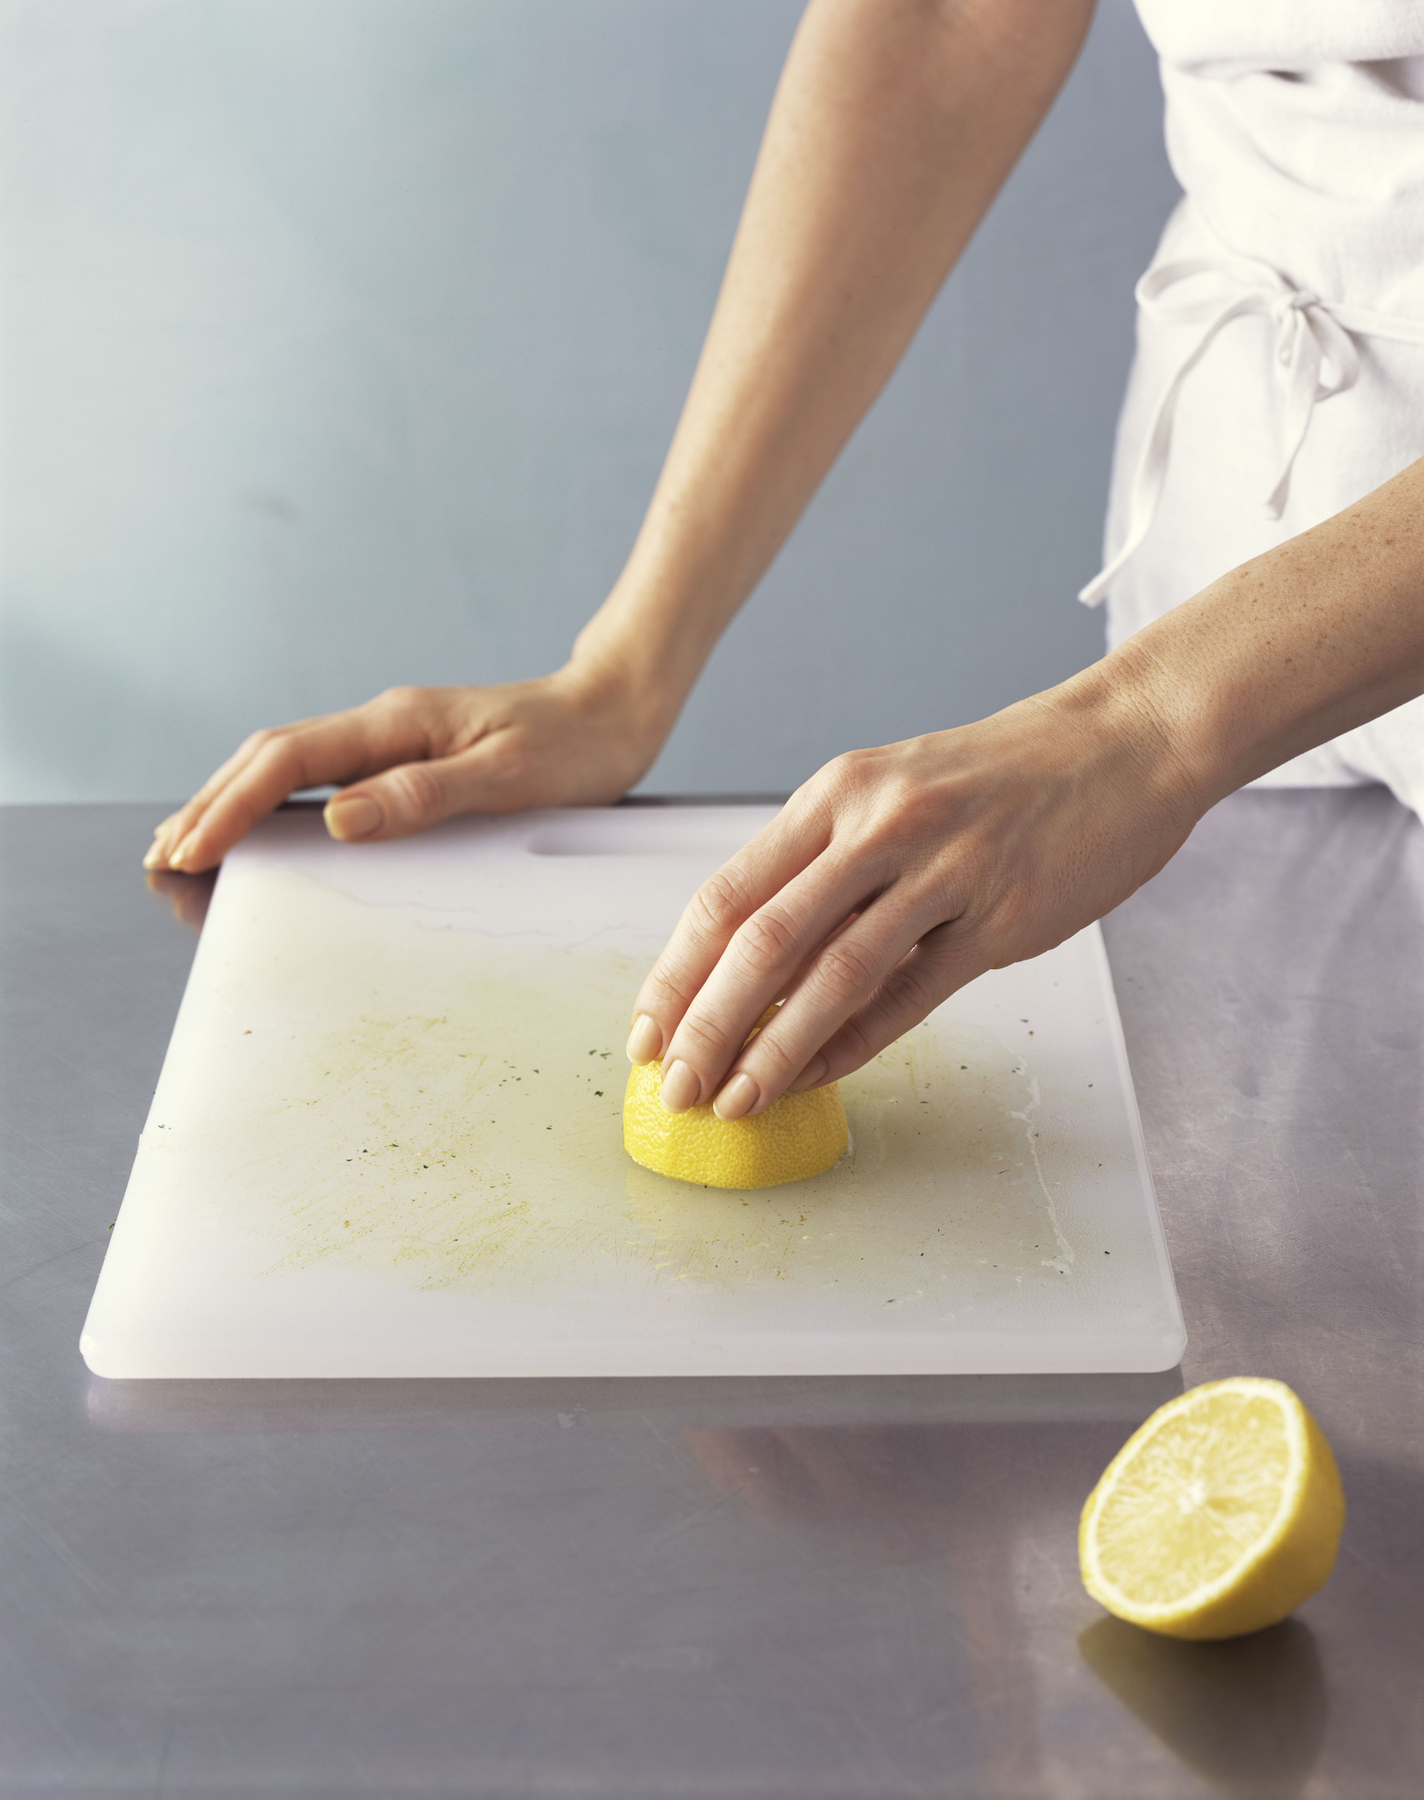 7 Ways a Lemon Can Help You Clean Your Entire House